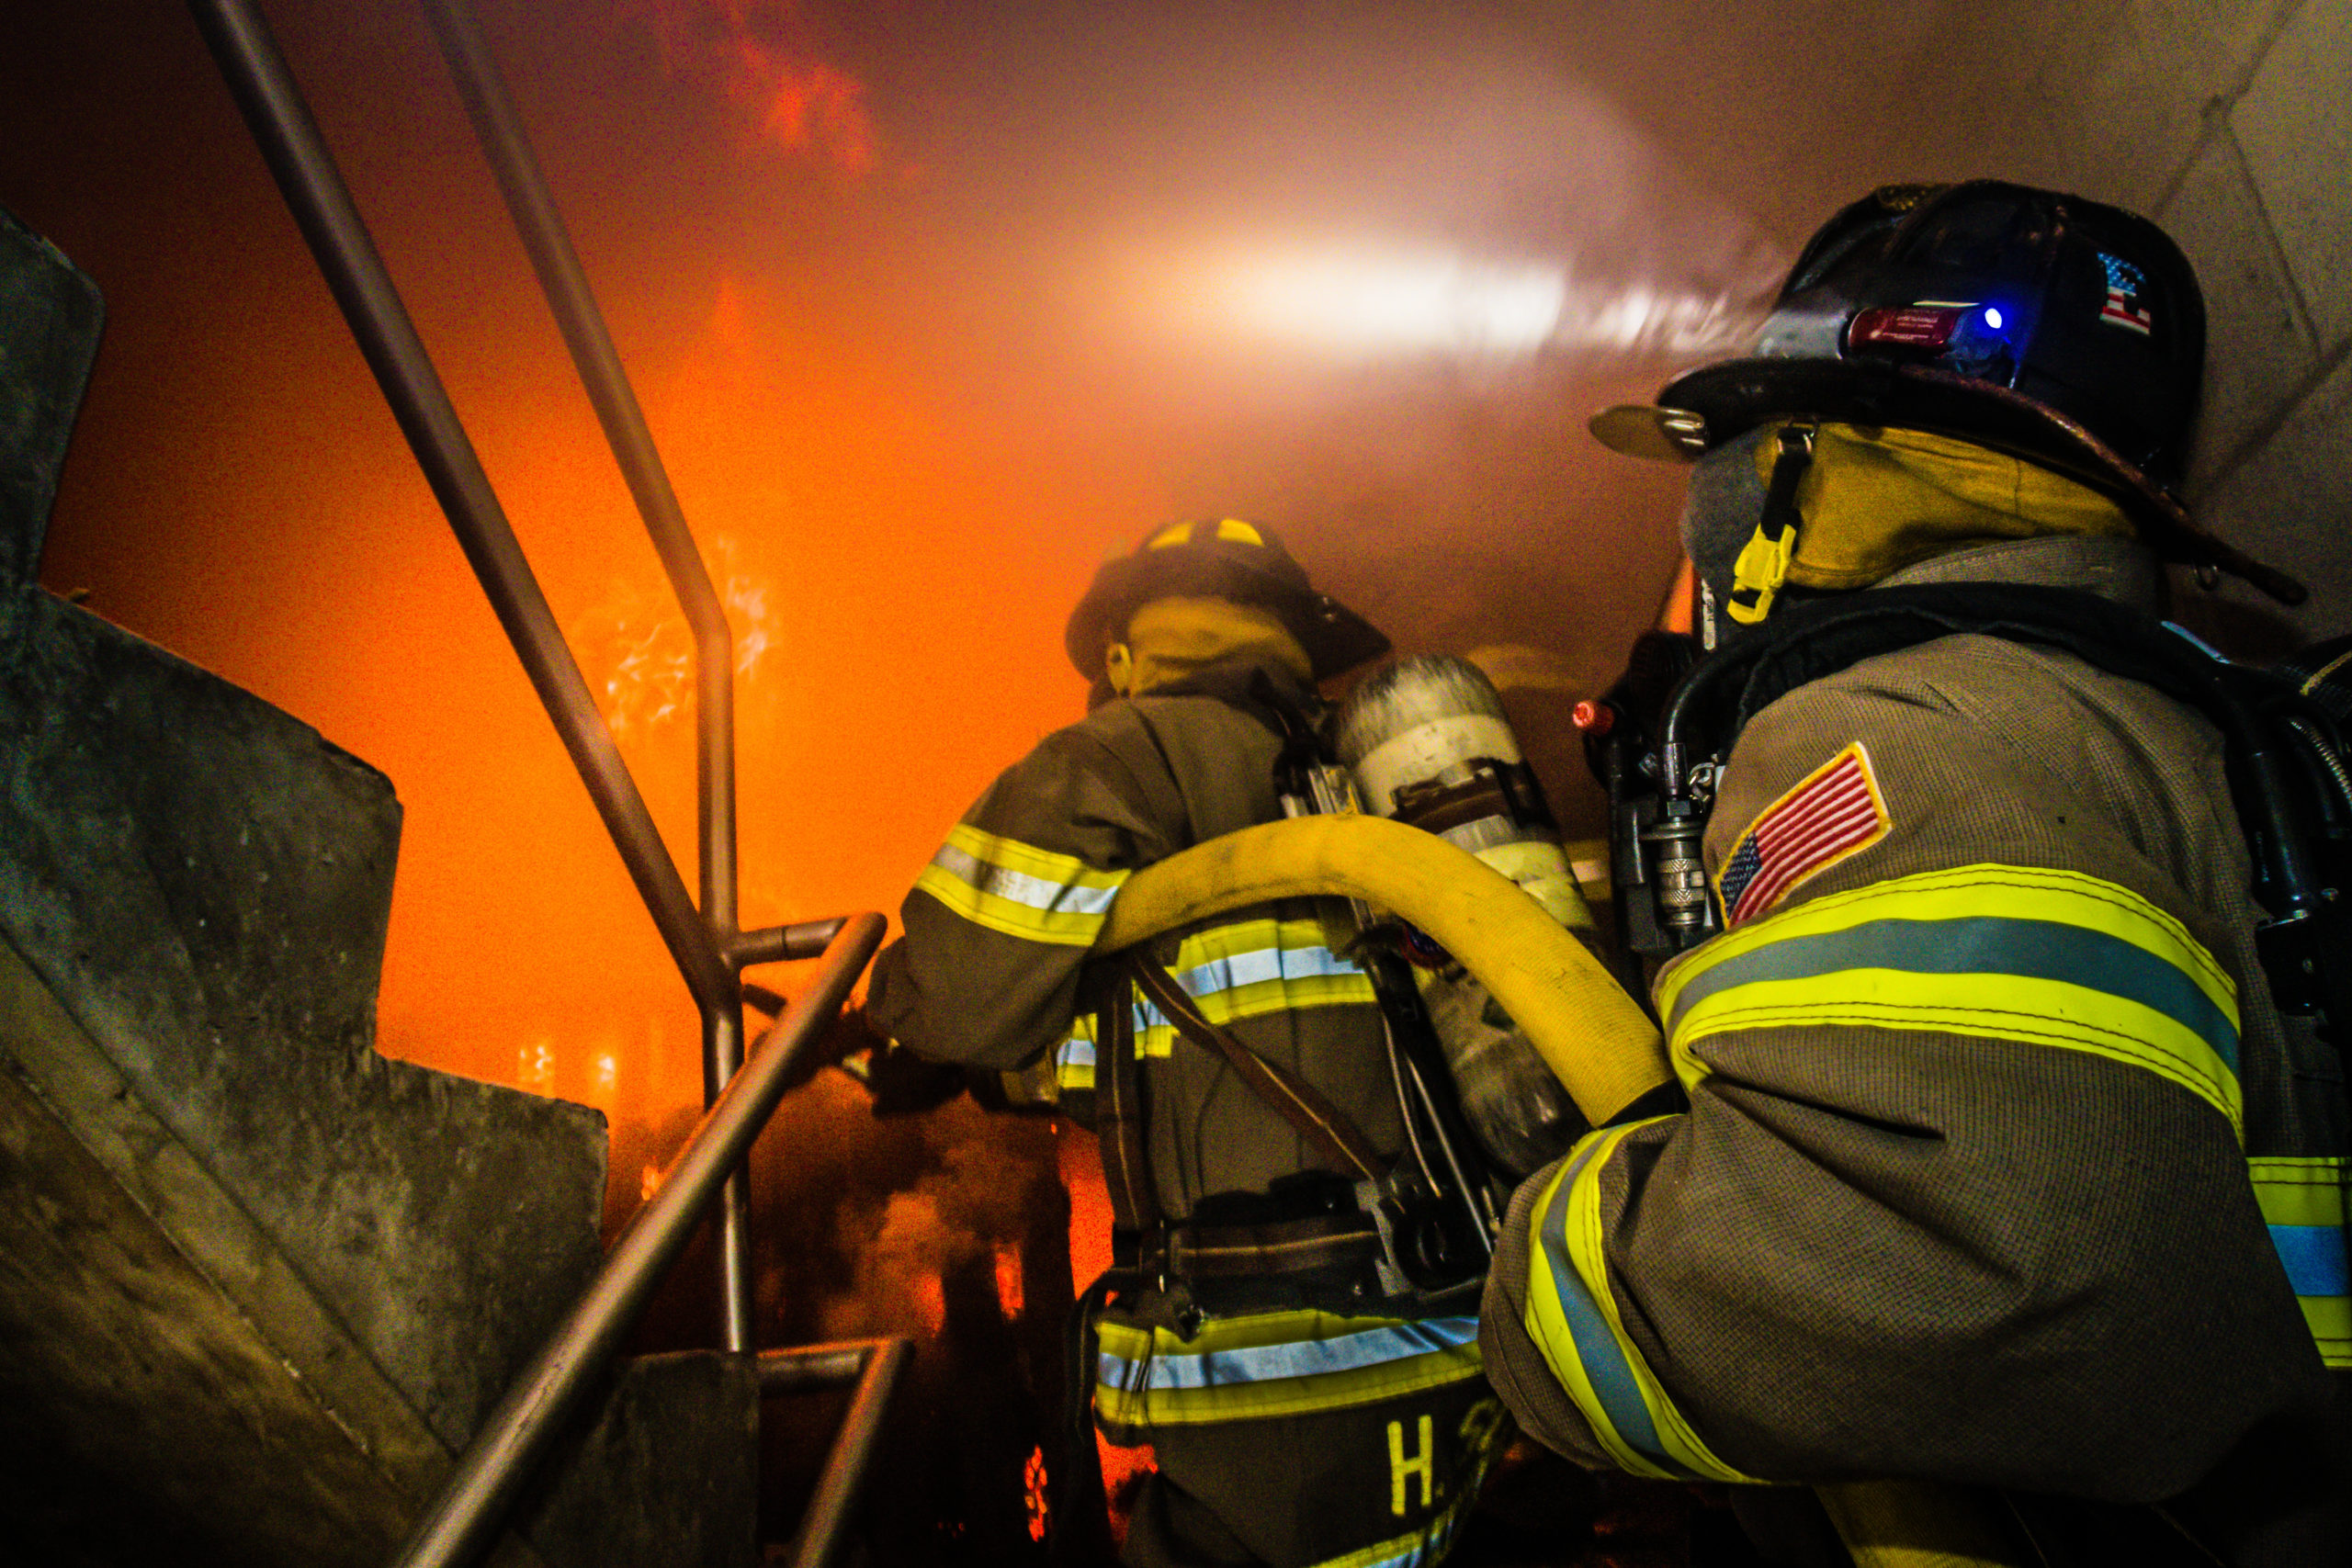 Firefighter training inside a burning building